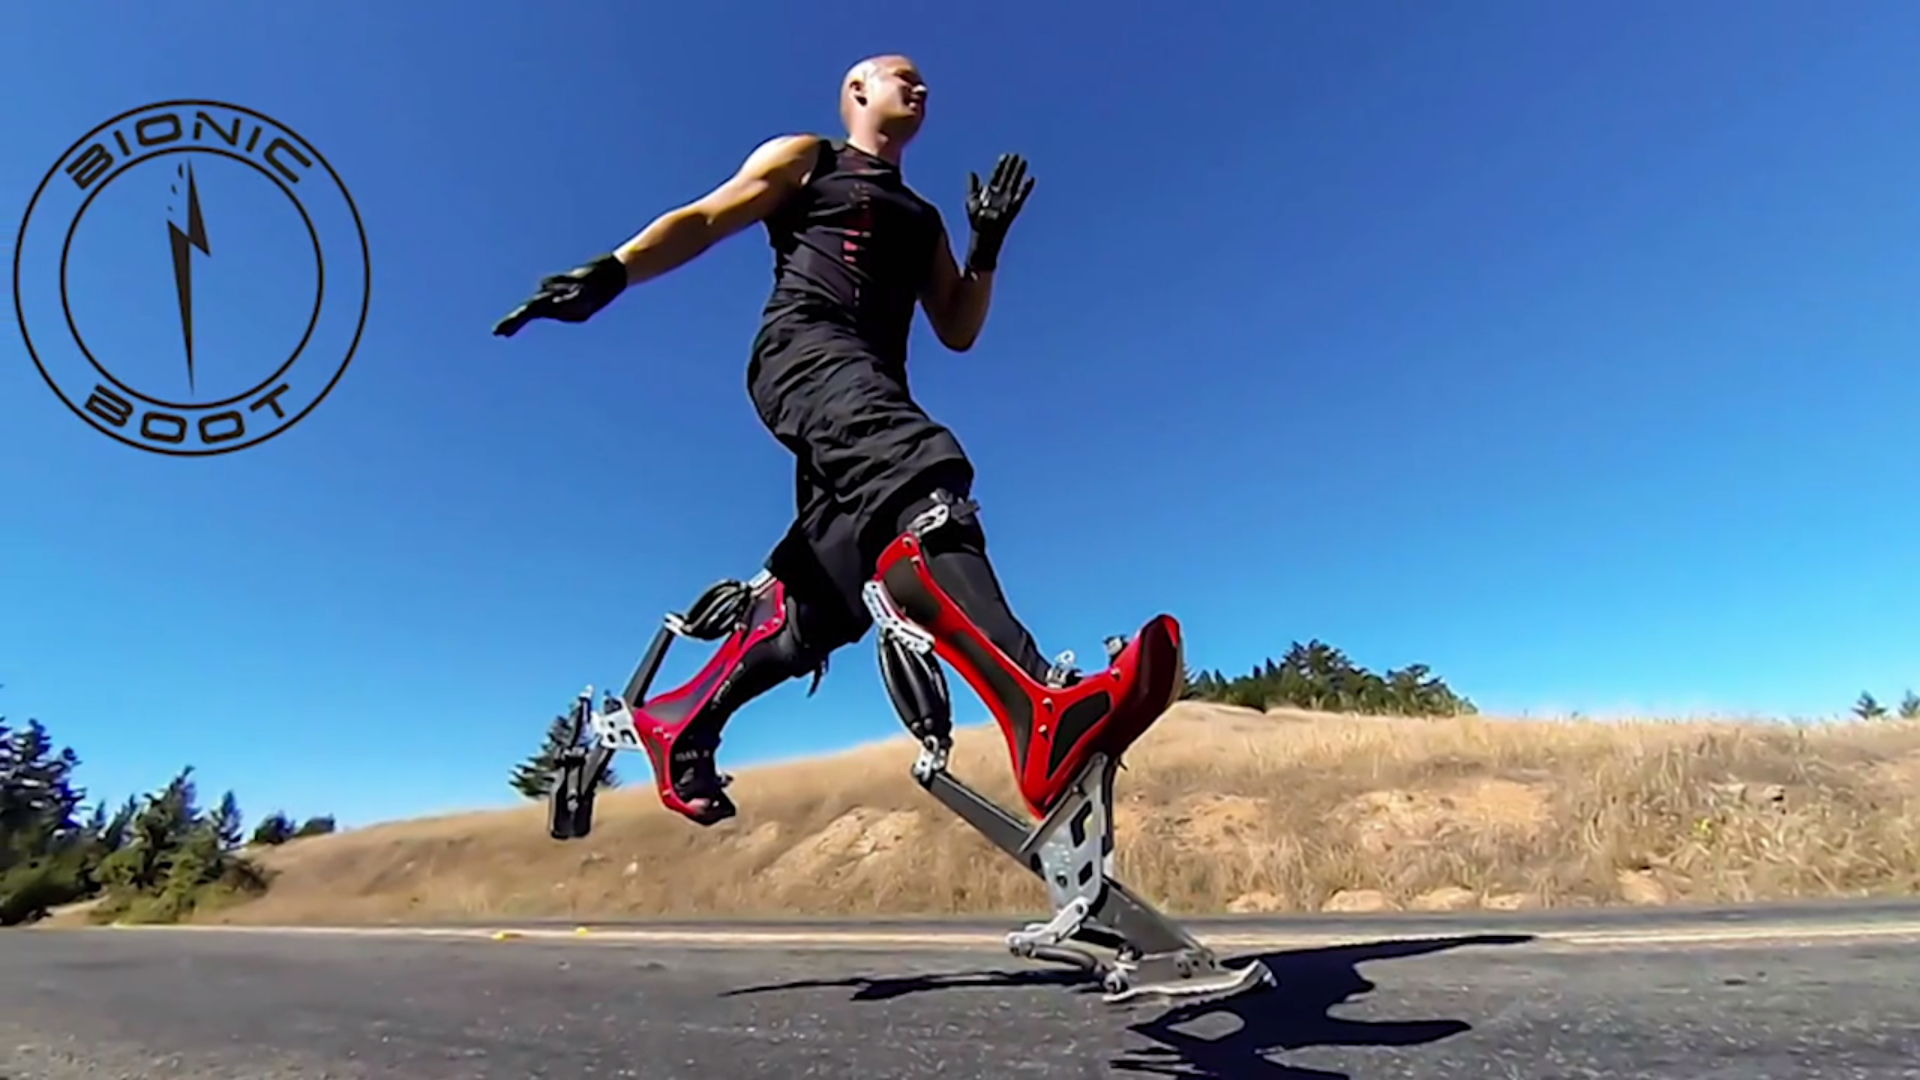 Video Bionic Boots That Let You Run Up To 25 MPH